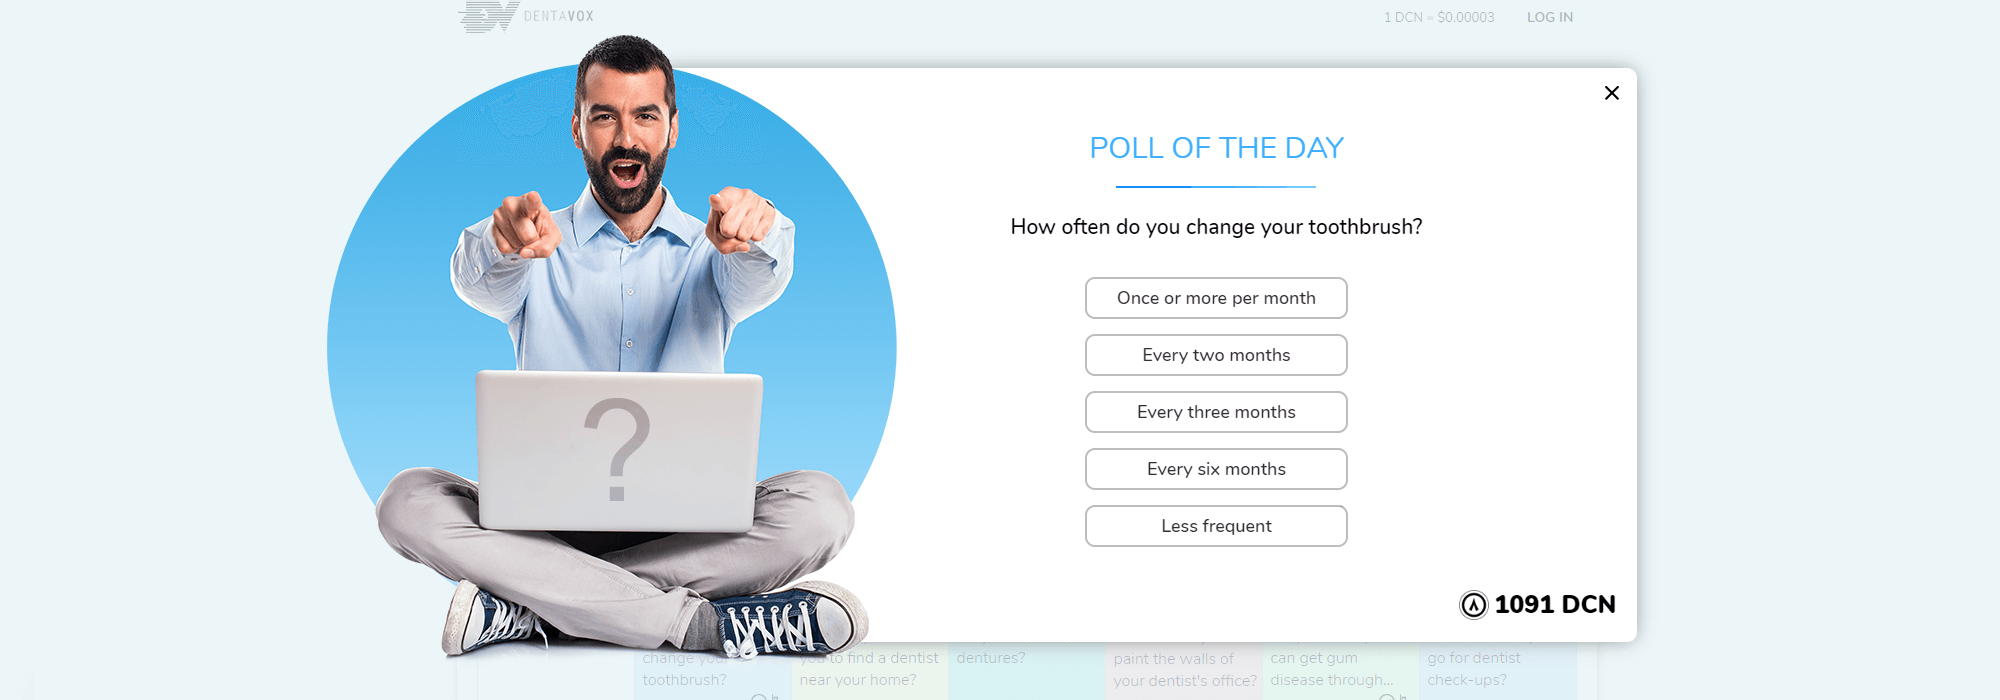 Dentavox Take polls with no signup required